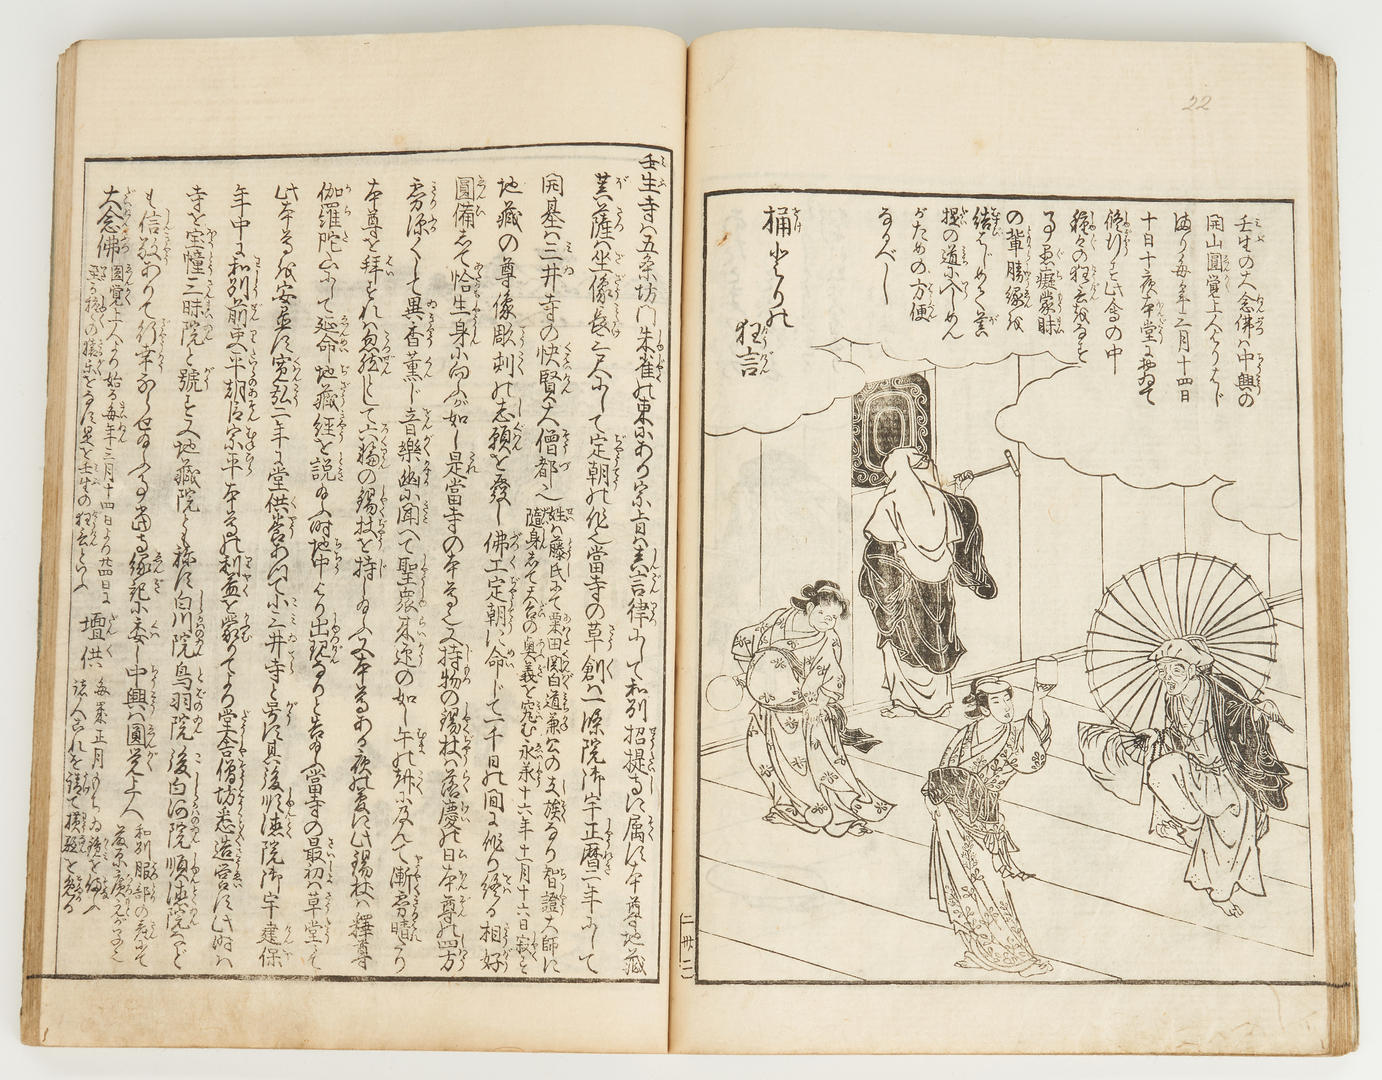 Lot 343: Akisato, Views of the Imperial Capital